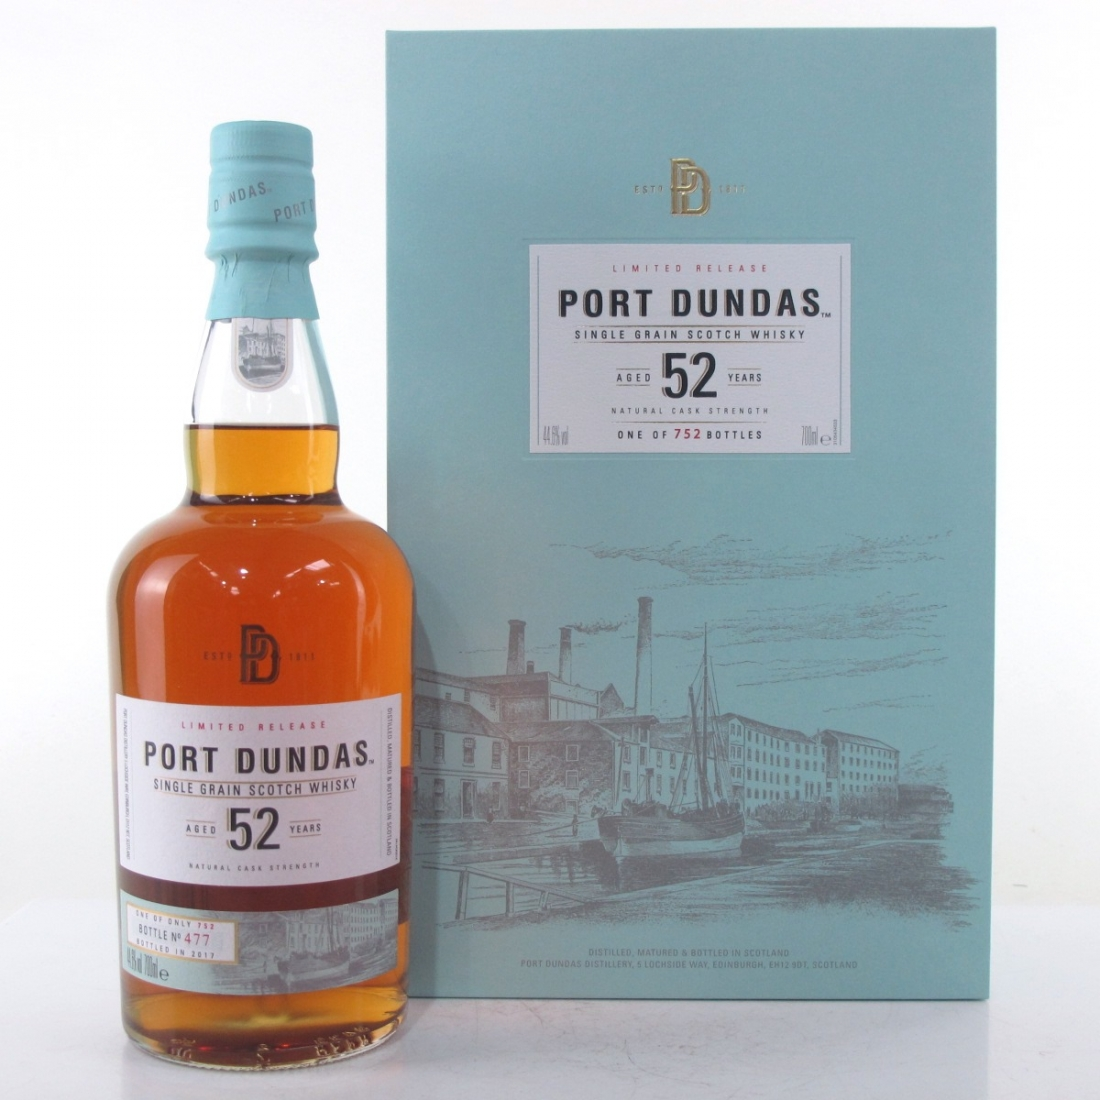 Port Dundas 52 Year Old Limited Edition